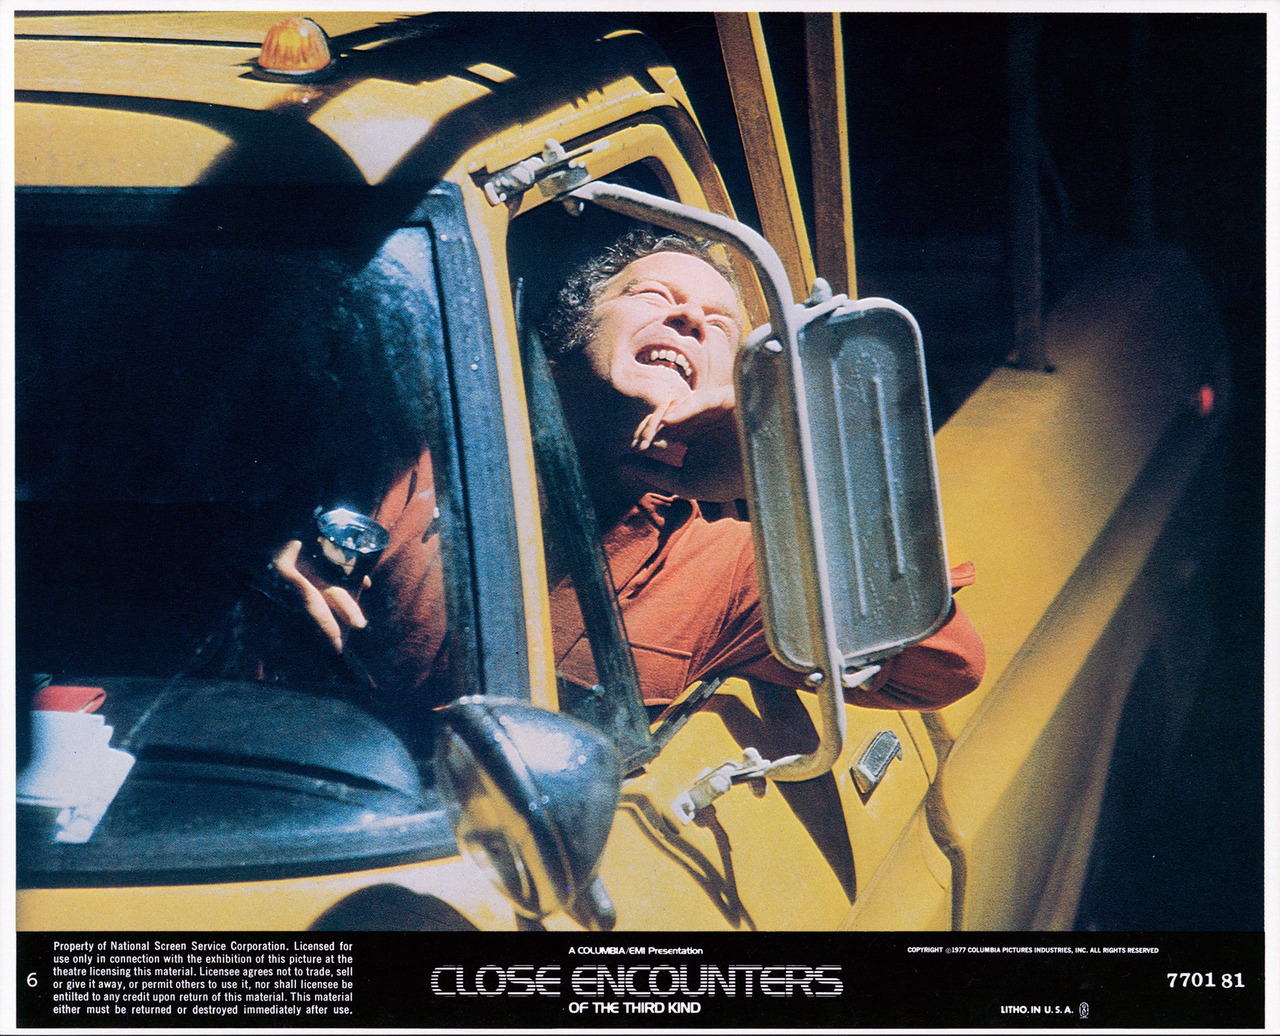 Close Encounters of the Third Kind, US lobby card. 1977